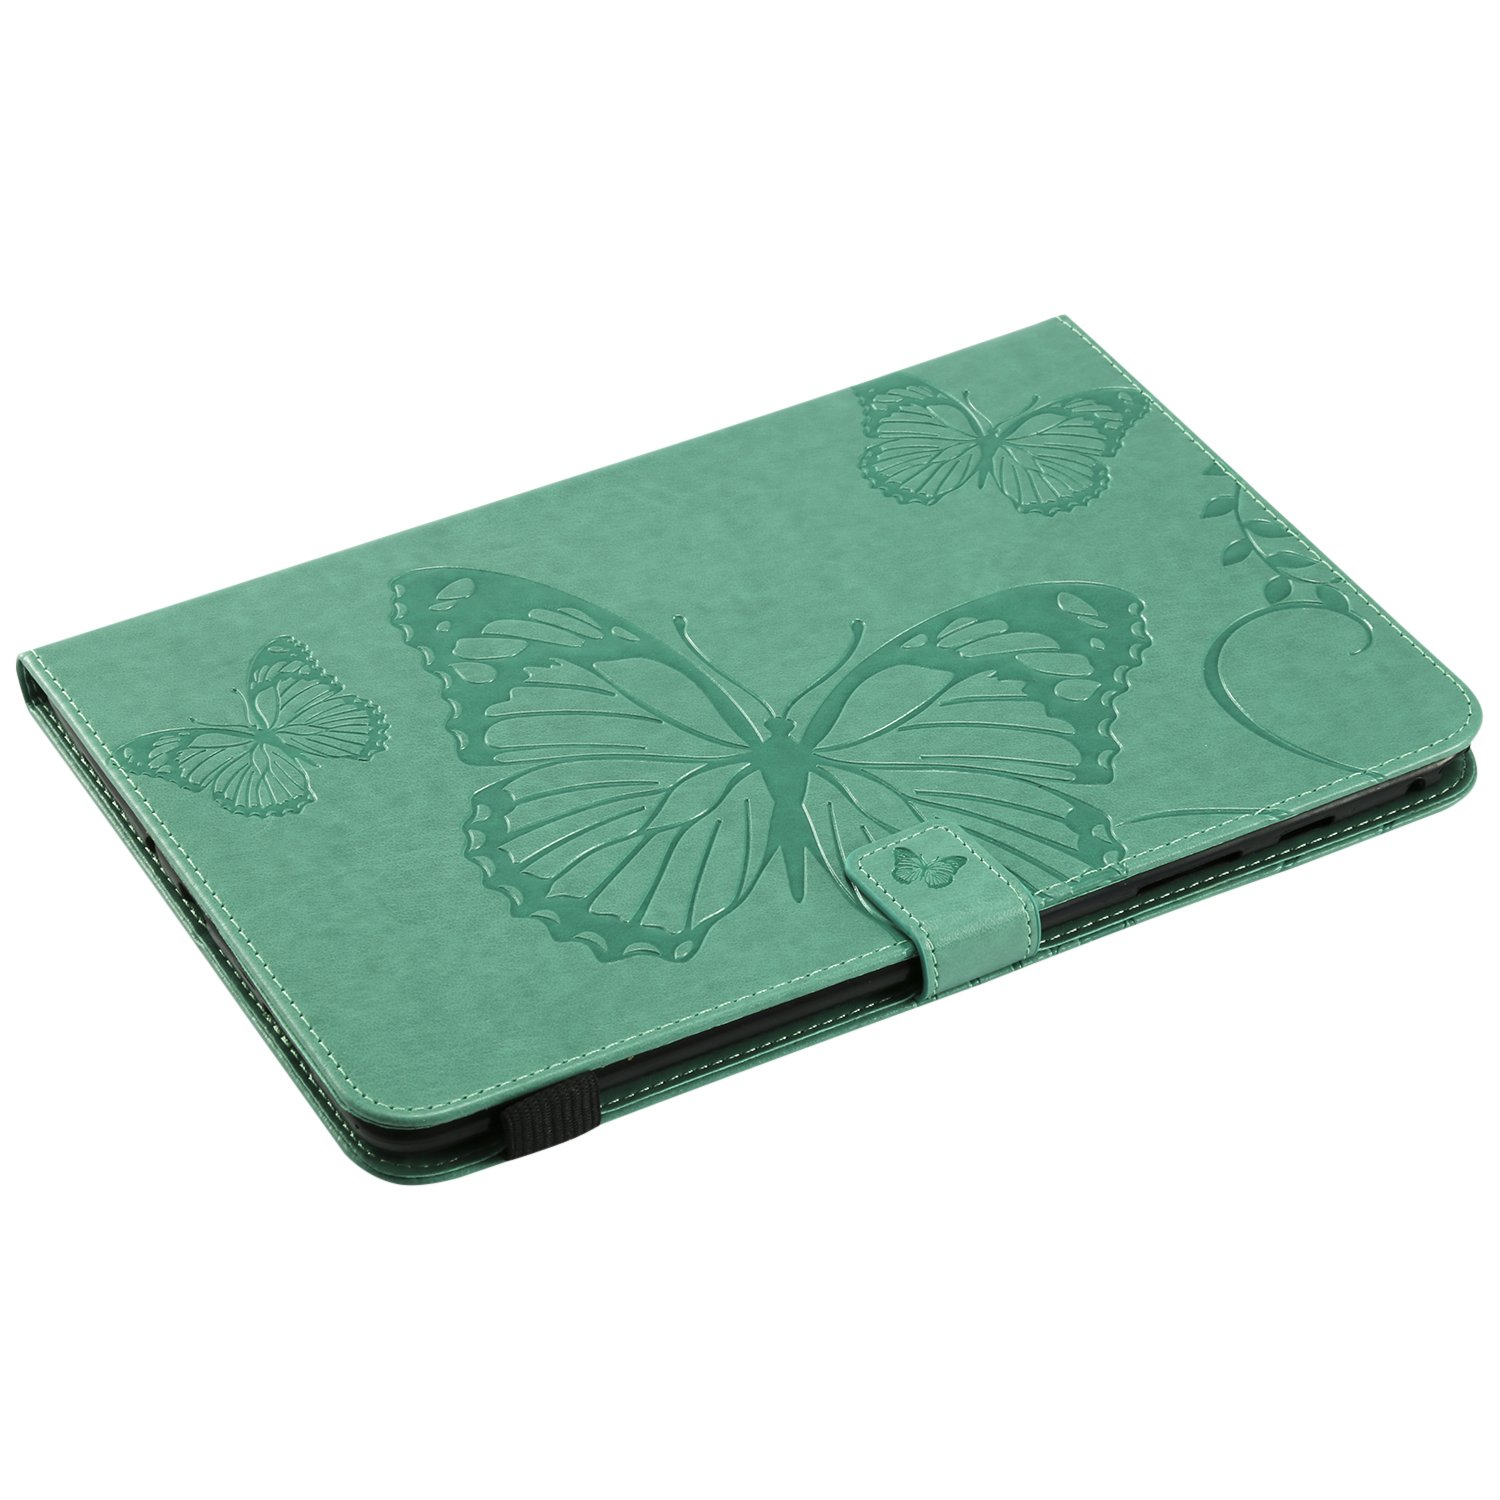 Shinyzone Tablet Leather Case for Samsung Galaxy Tab A 9.7 T550,Embossed Green Butterfly Pattern with Credit Card Slots and Pencil Holder,Auto Sleep and Wake Function Magnetic Flip Stand Cover by ShinyZone (Image #4)